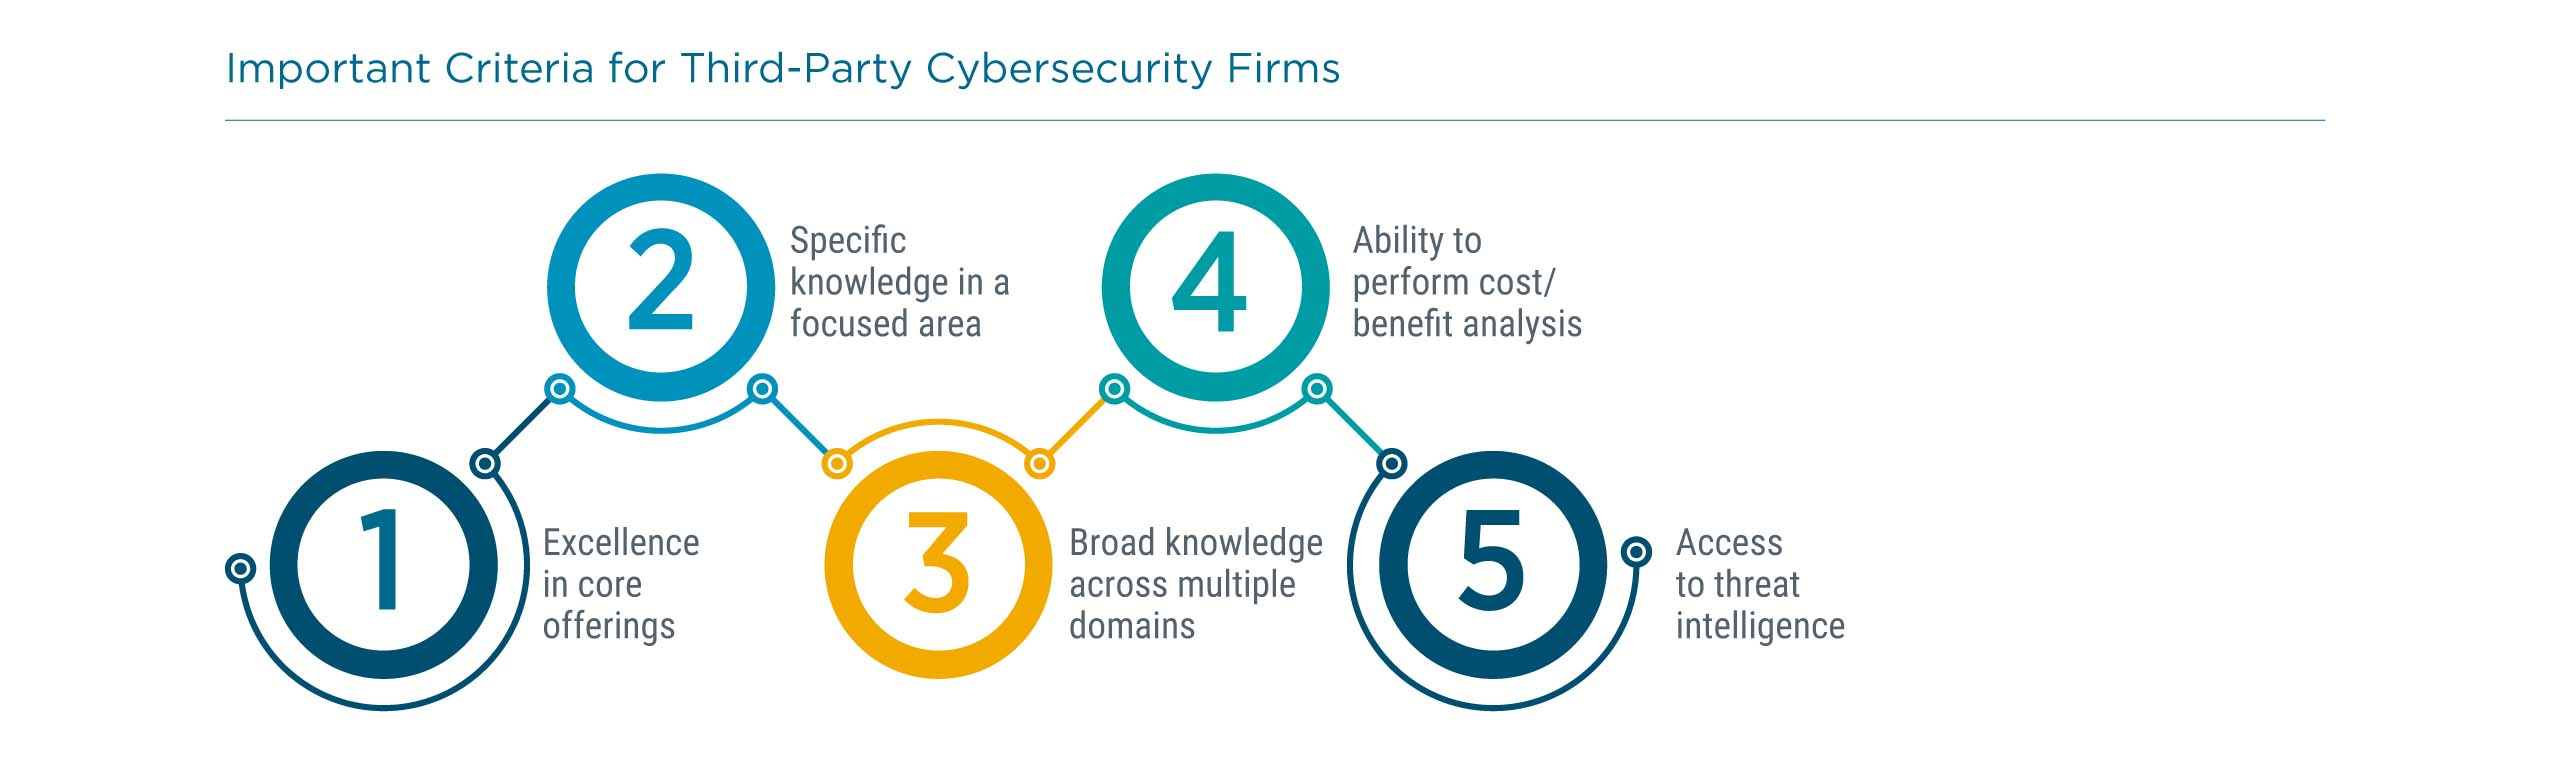 Important Criteria for Third-Party Cybersecurity Firms